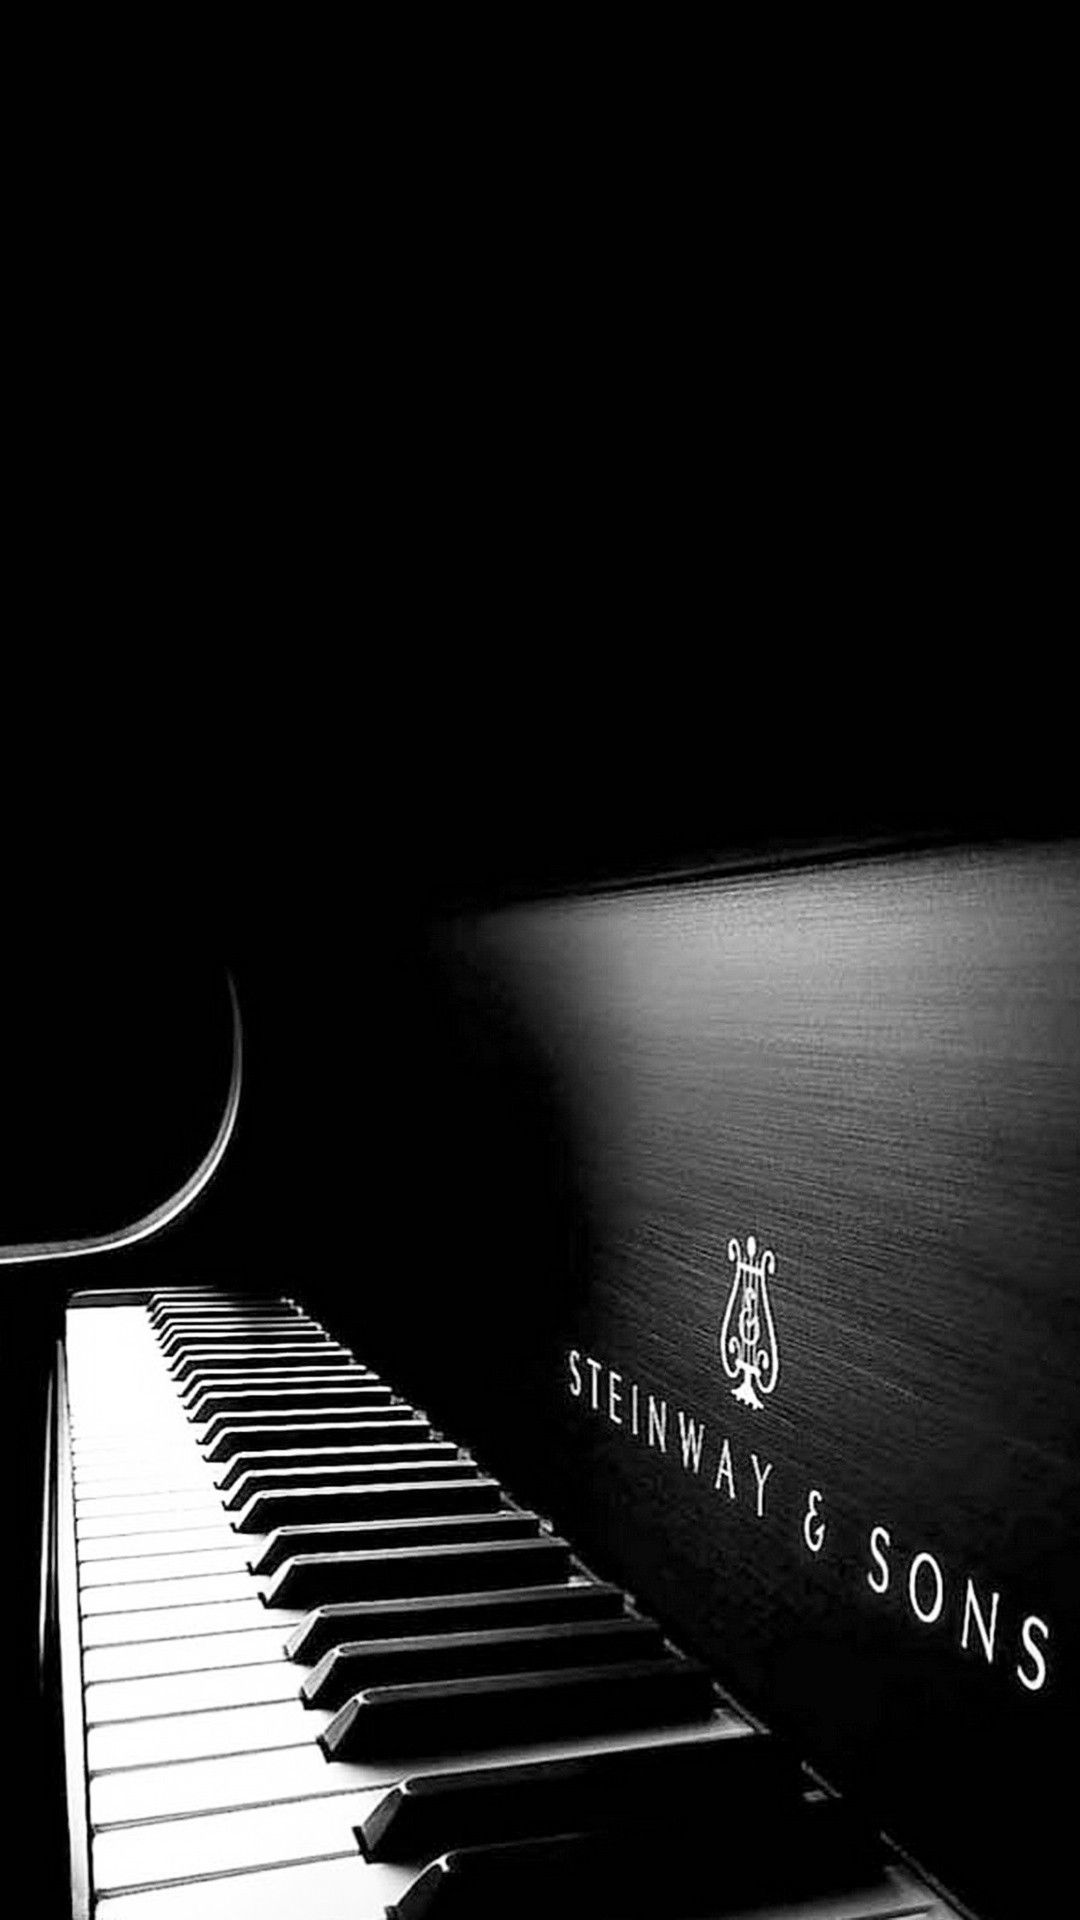 Steinway and Sons Black Piano Smartphone Wallpaper and Lockscreen 1080x1920